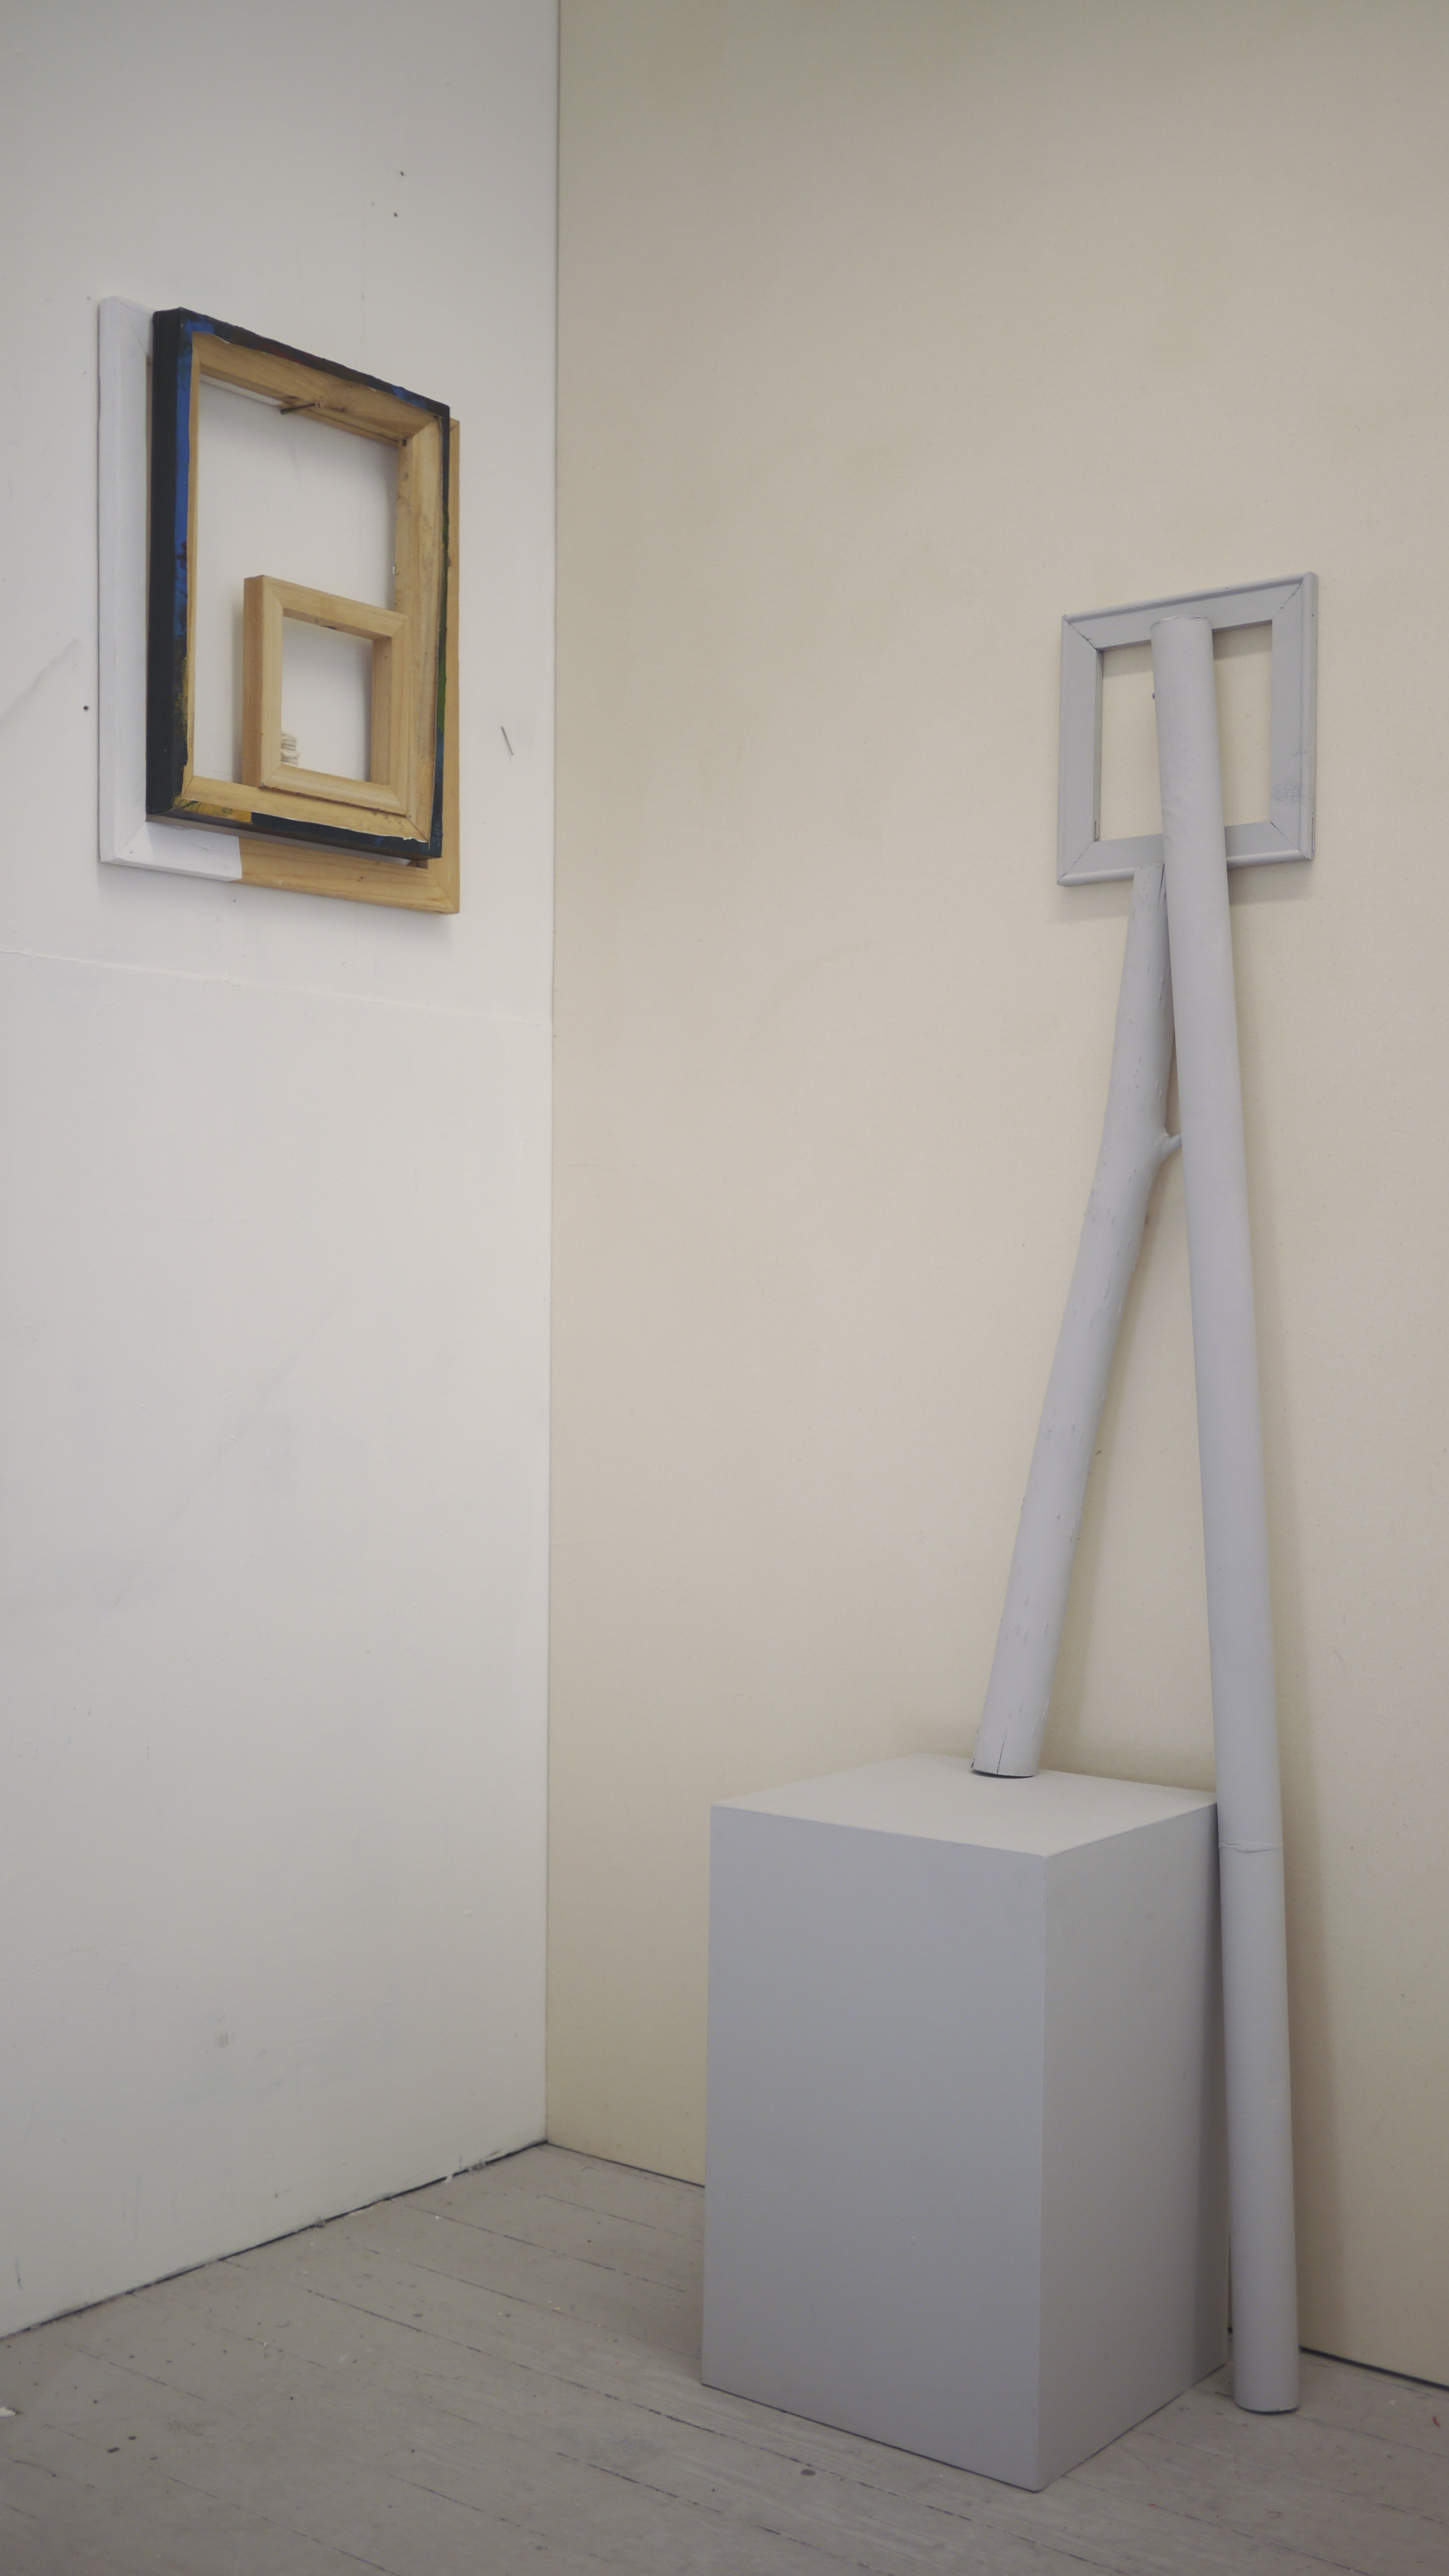 Ally McGinn (2017)Presentation test [Studio view].  There are individual pieces in my practice, but the second part of their existence involves the exploration of them in relation to other works. This photo is a test of a conversation between the works.